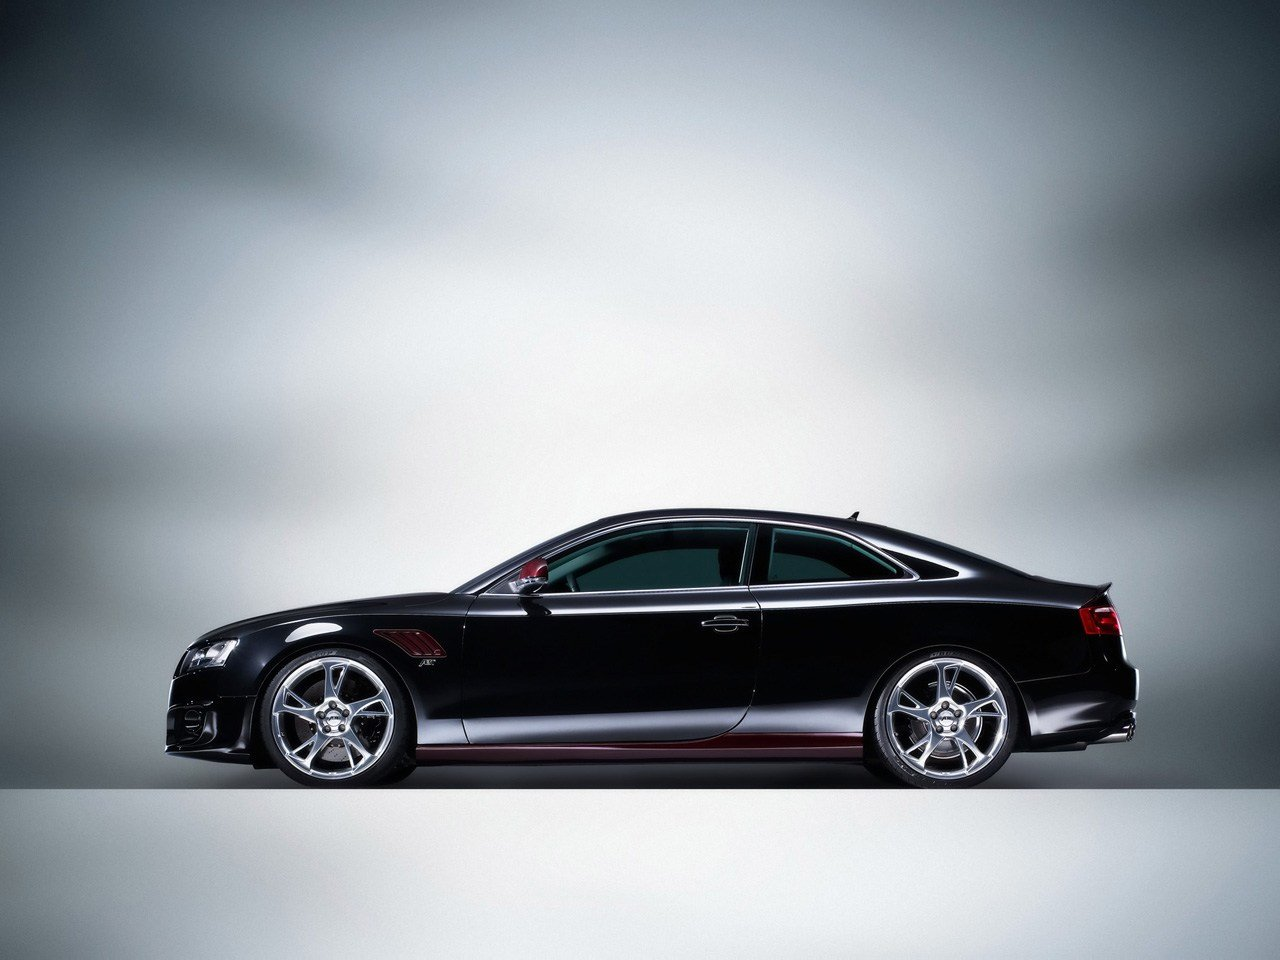 Latest Abt Sportsline As5 Based On Audi A5 News 2013 Free Download